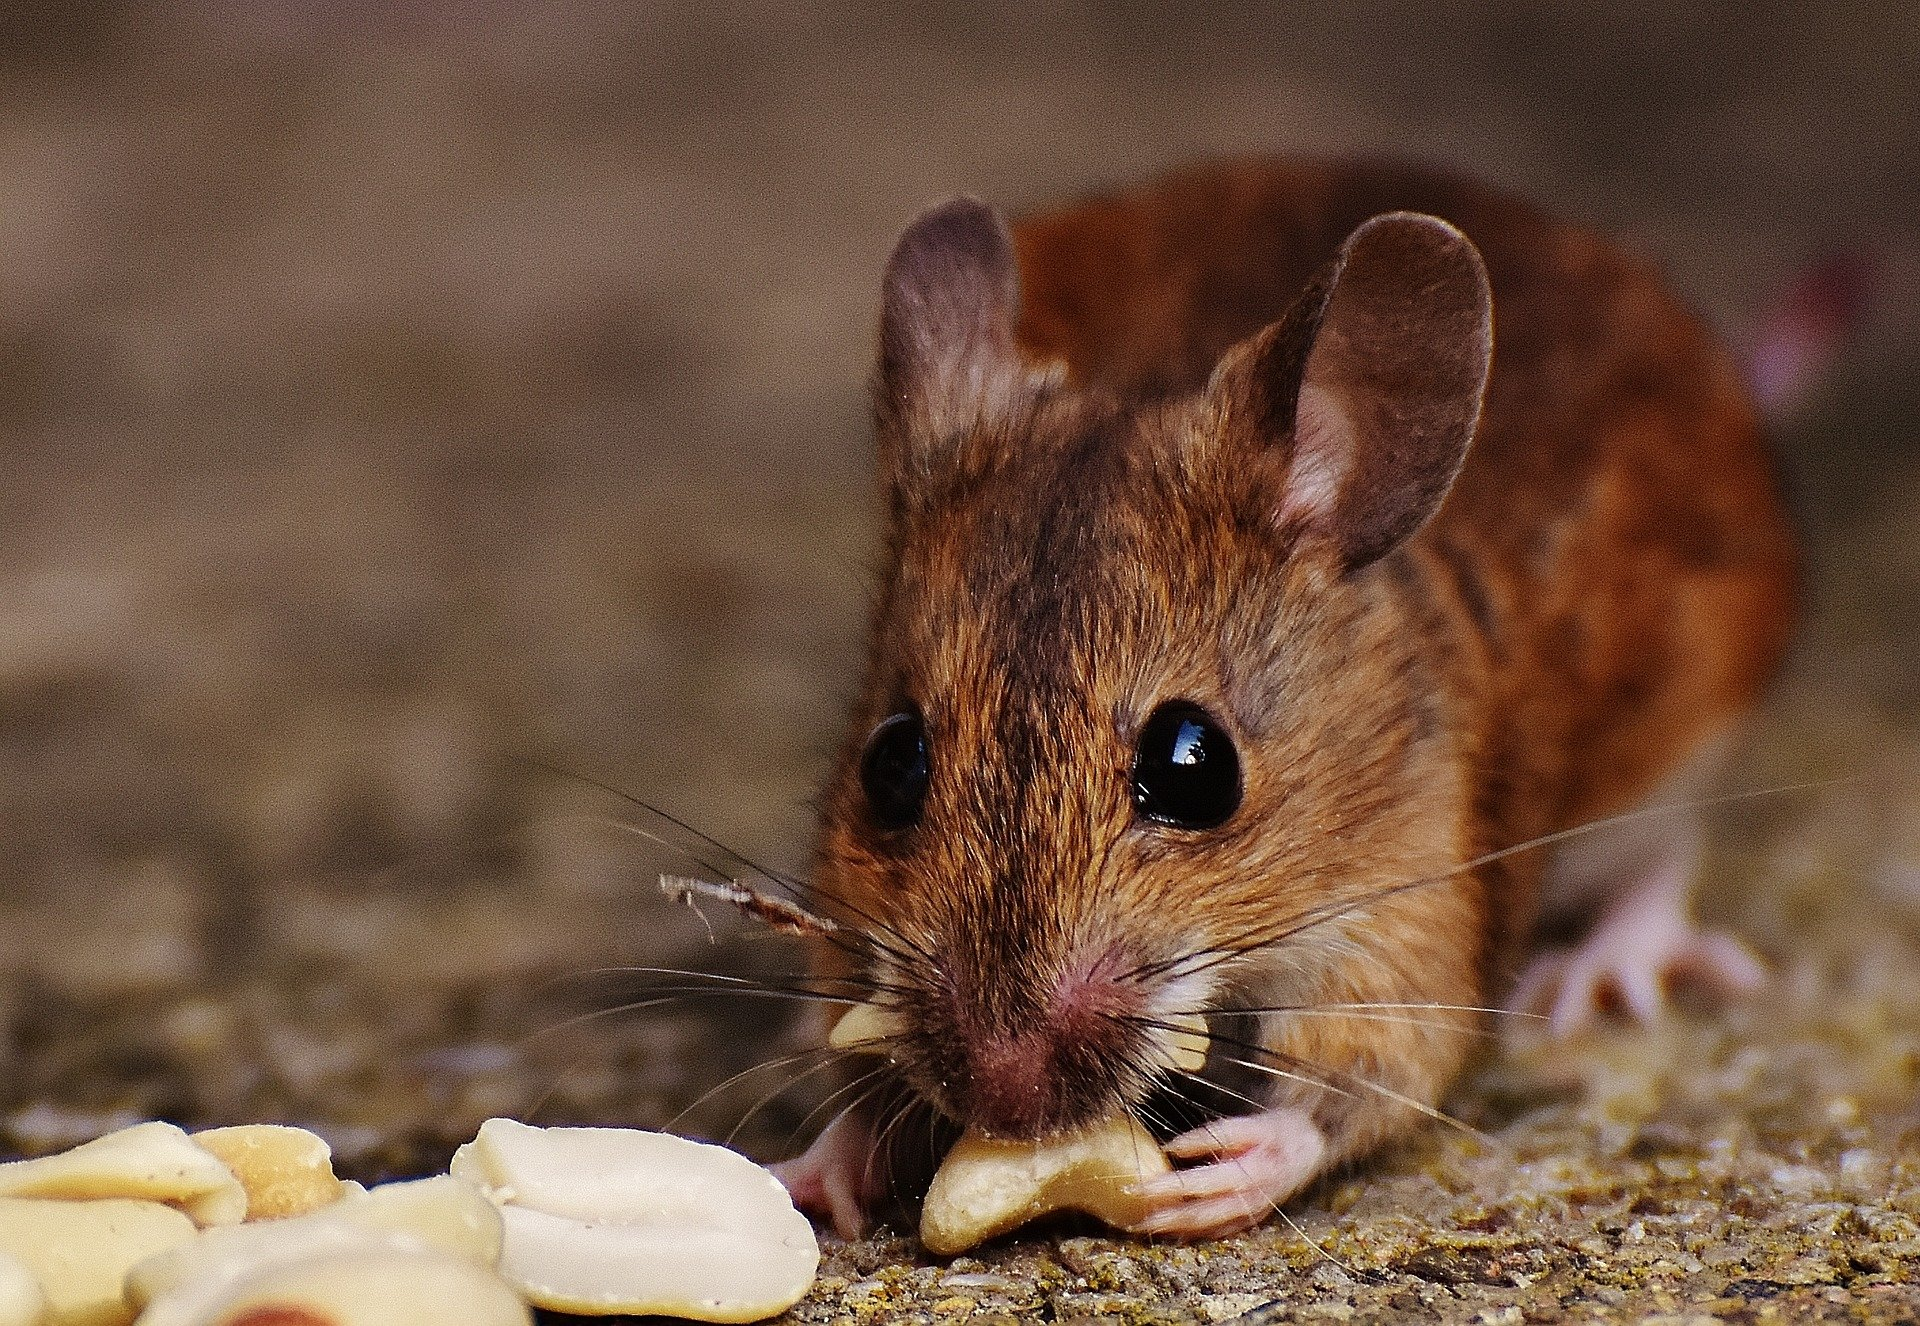 In Mice A Single Vaccine Prompts The Immune System To